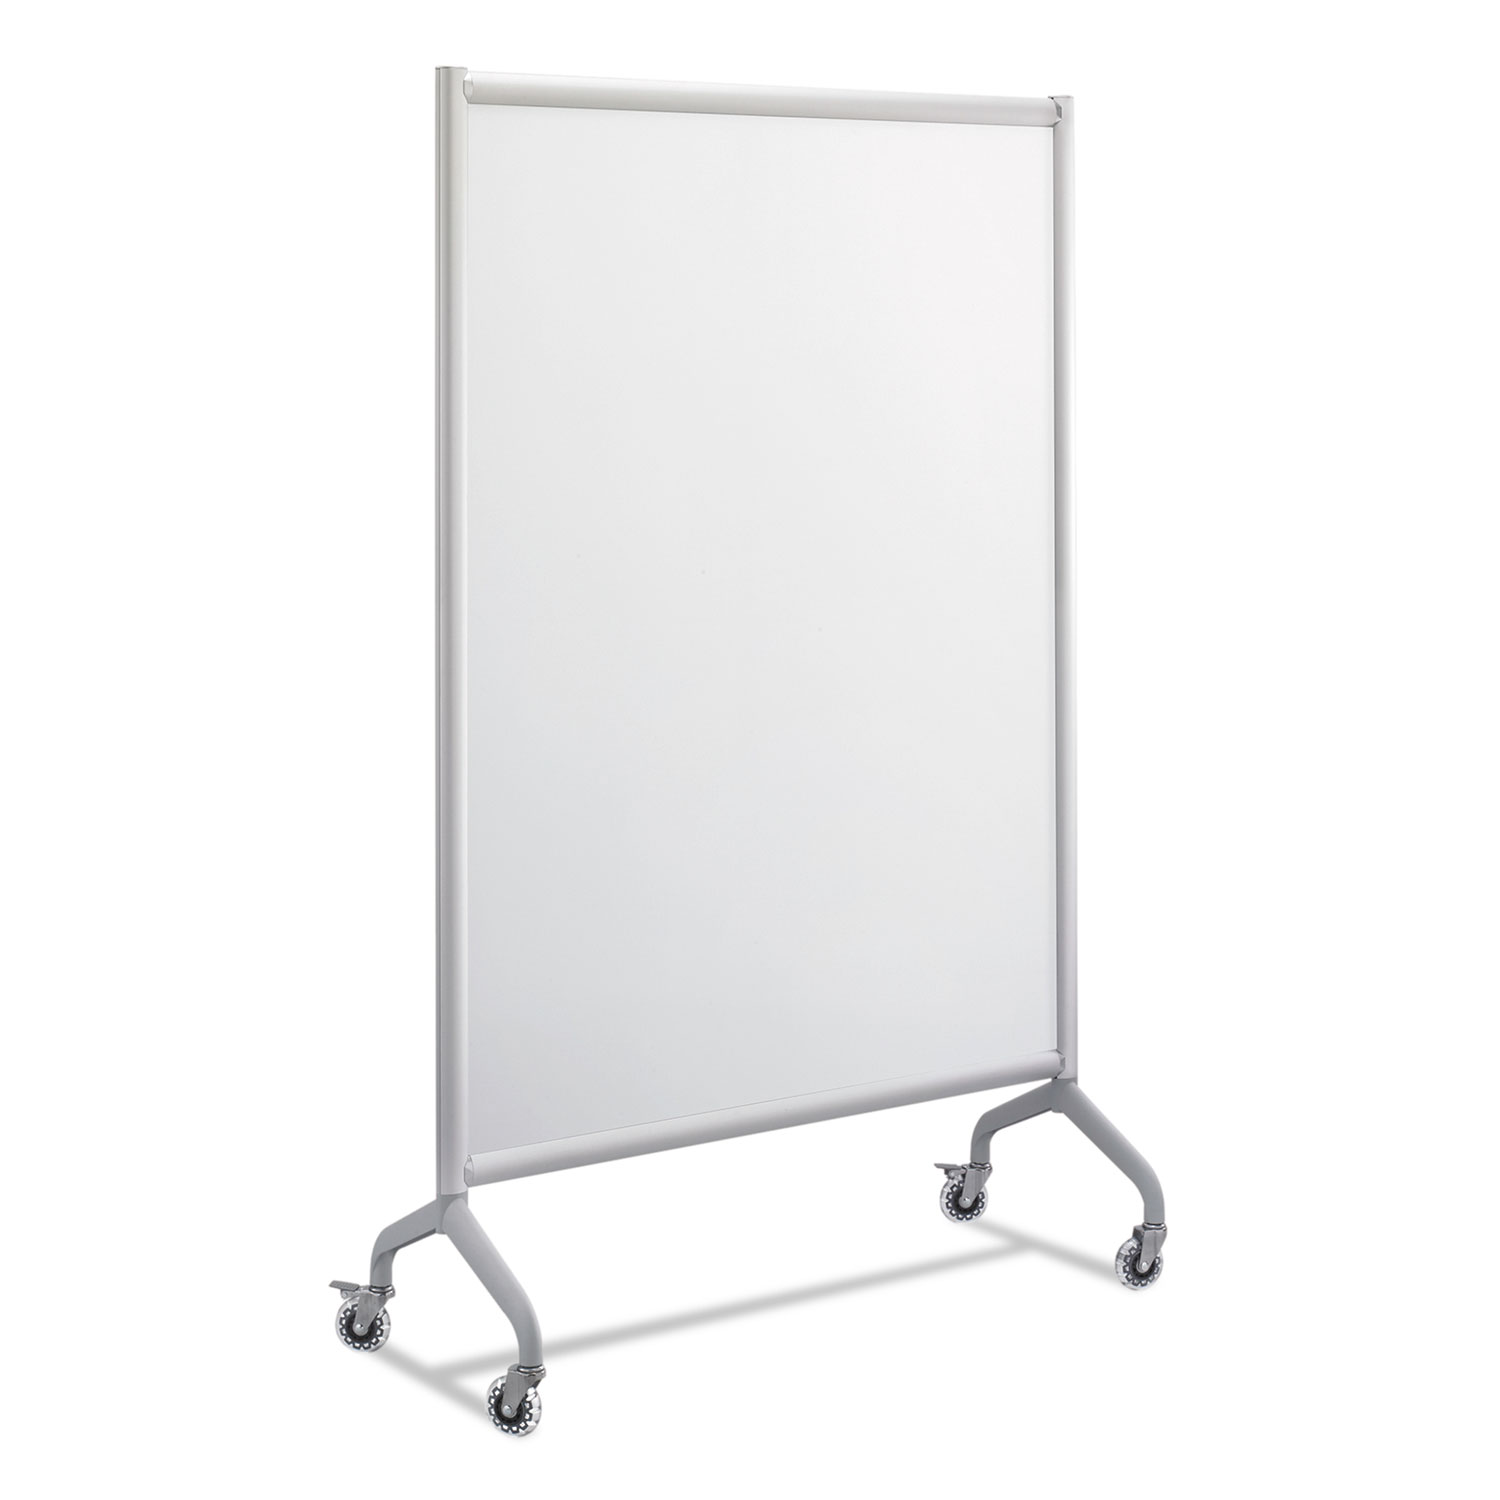 Rumba Full Panel Whiteboard Collaboration Screen, 42 x 66, White/Gray